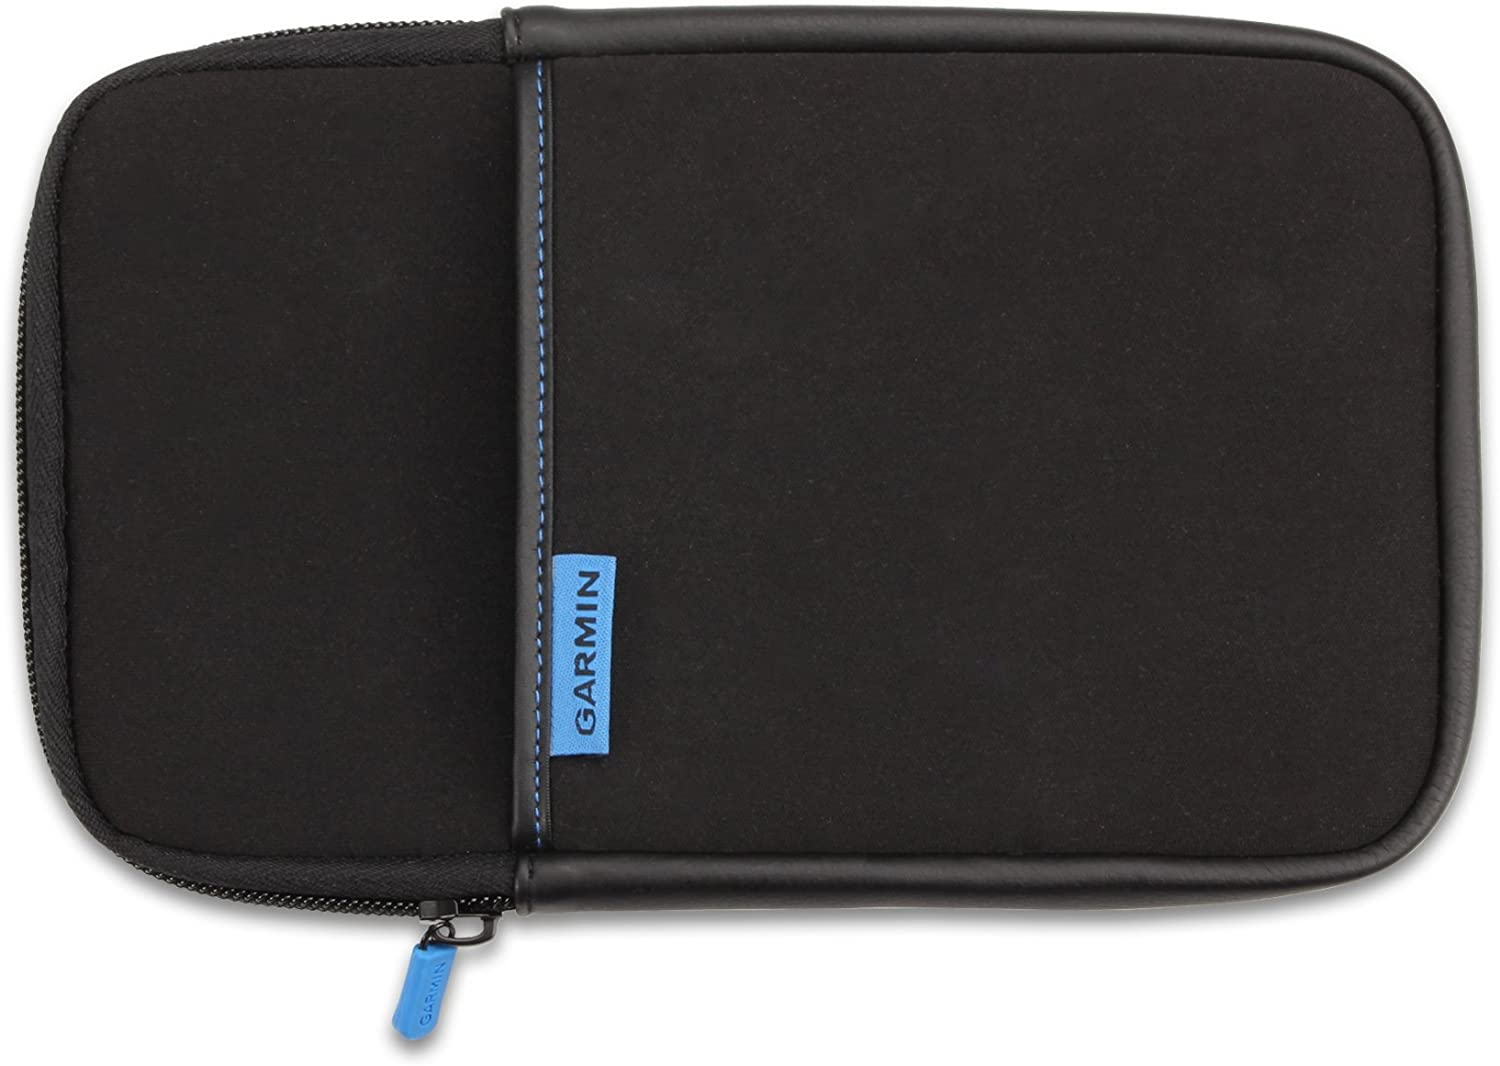 Garmin Carrying Case - Funda para GPS, negro